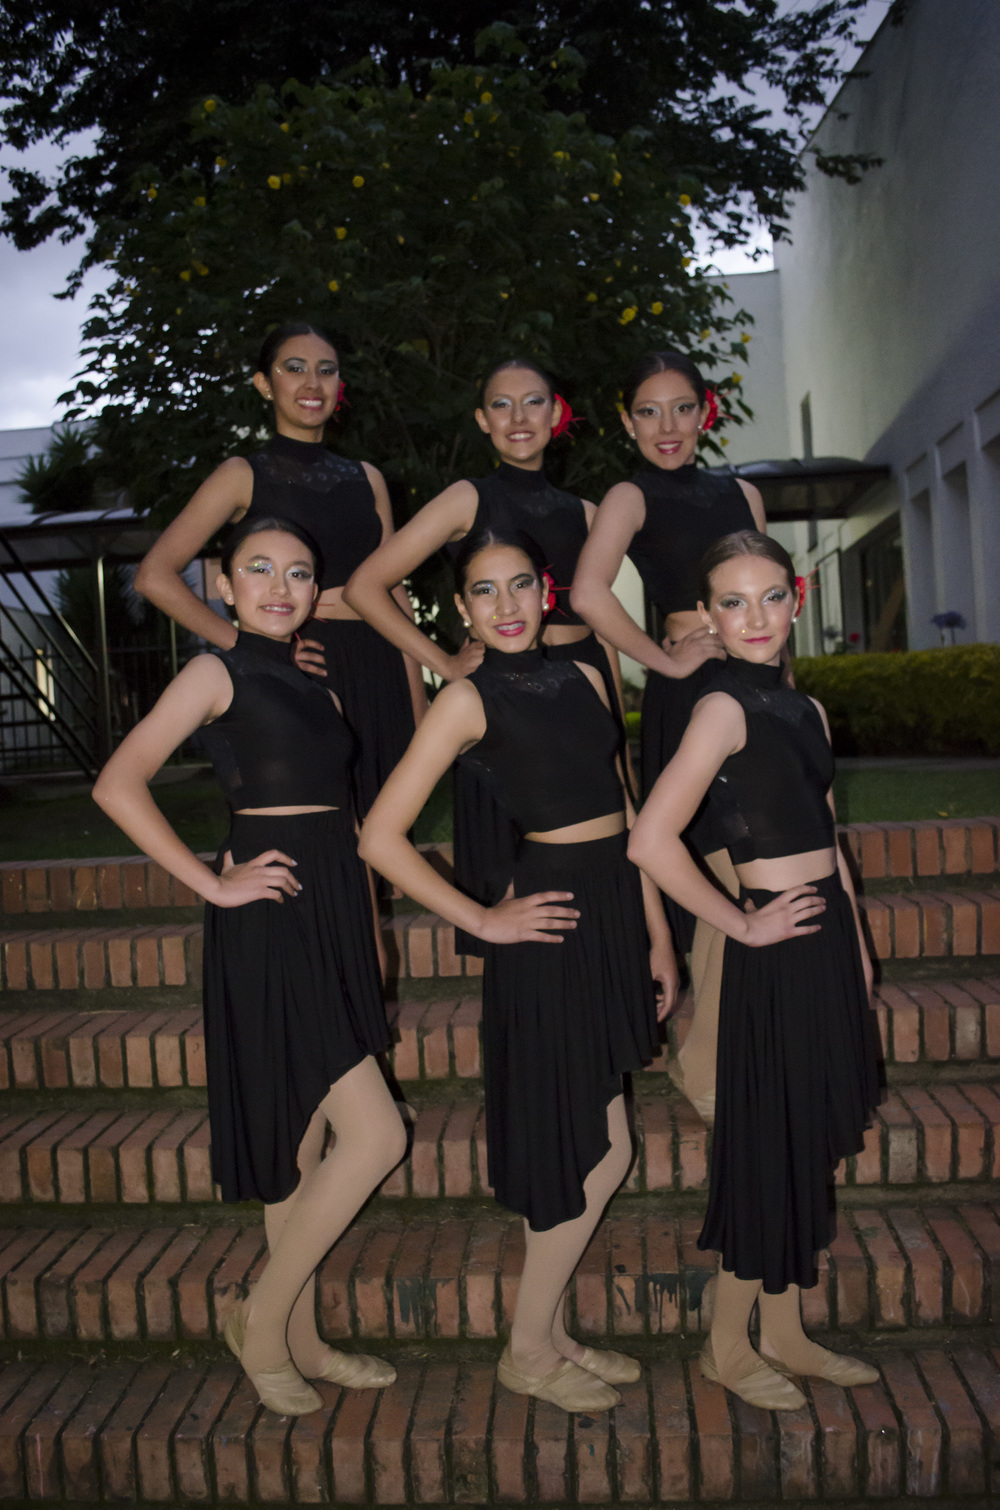 SENIOR JAZZ TEAM